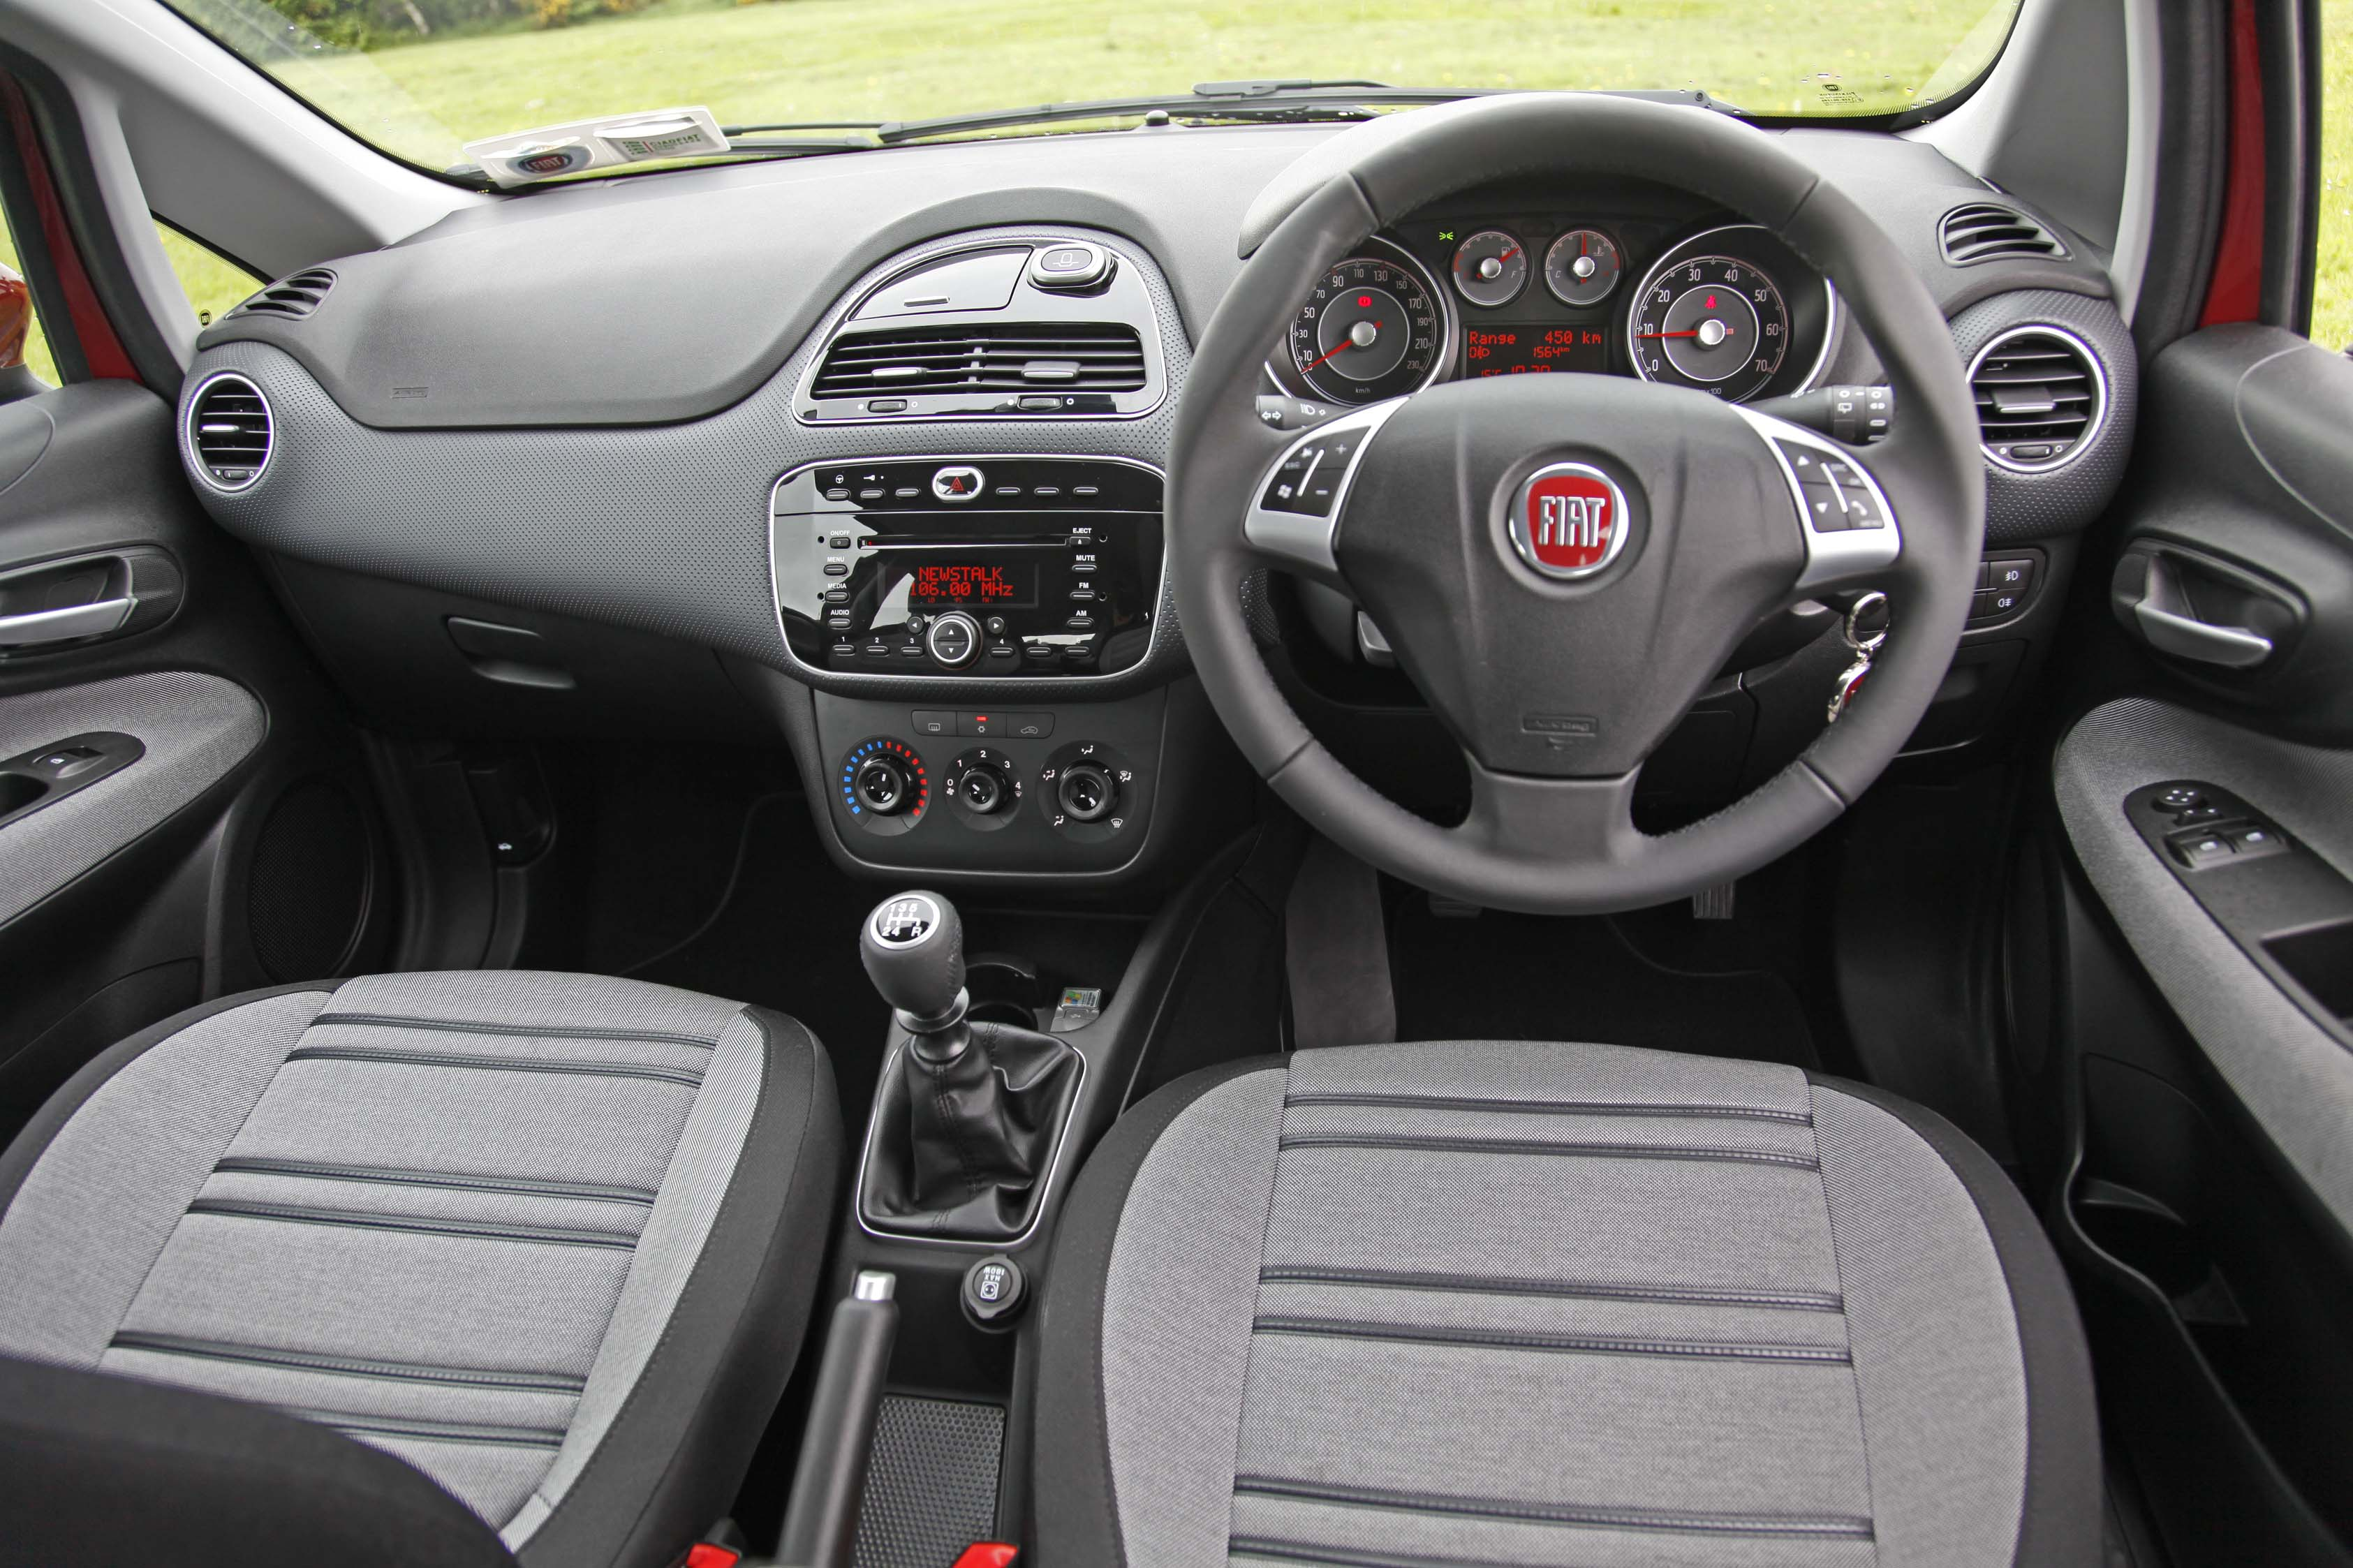 fiat punto evo 1 2 dynamic the next gear. Black Bedroom Furniture Sets. Home Design Ideas